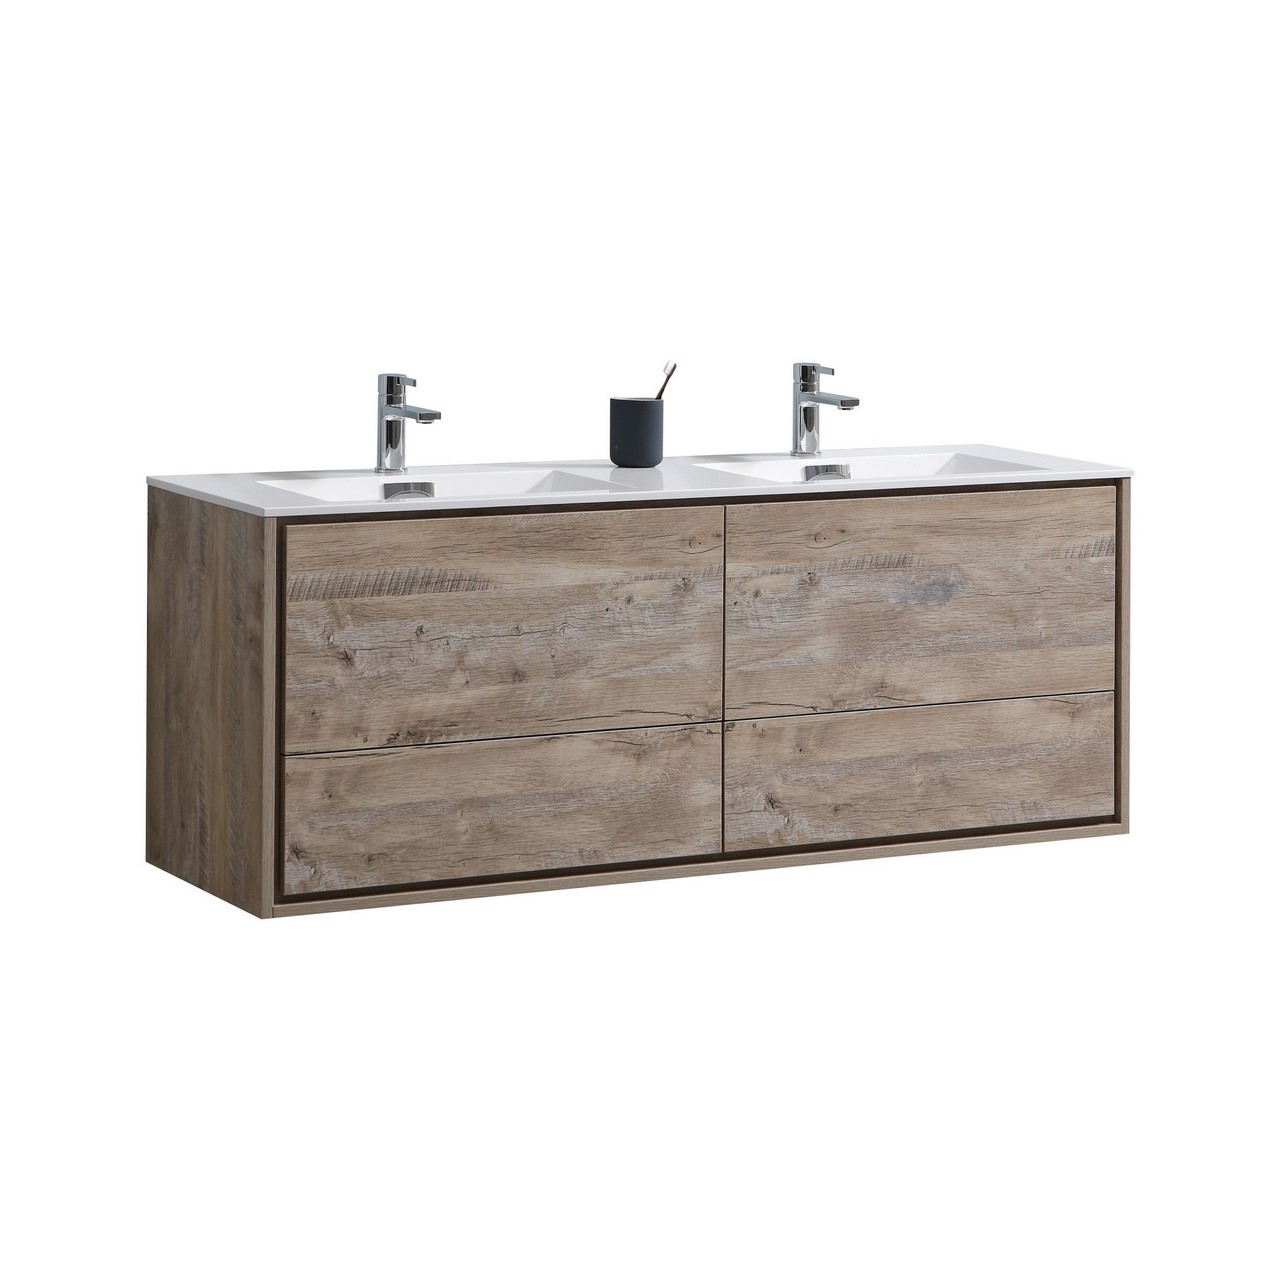 De lusso 60 double sink nature wood wall mount modern bathroom vanity kubebath - Modern bathroom vanity double sink ...